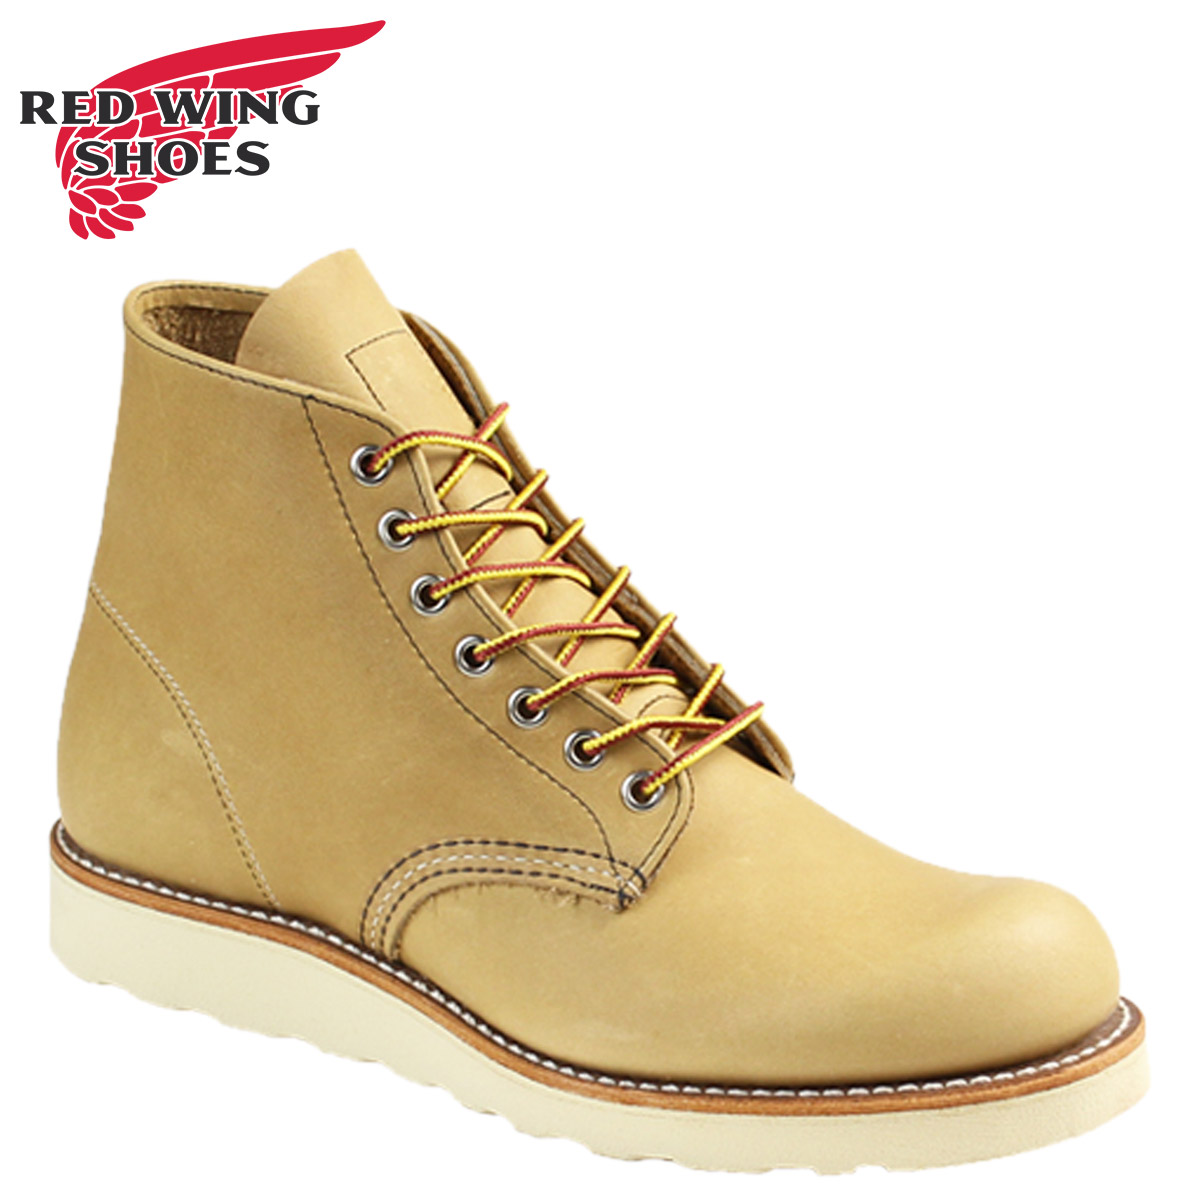 e744a965073 Red red wing RED WING Irish setter boots 6INCH CLASSIC ROUND 6 inches  classic round toe D Wise 8199 red red wing men